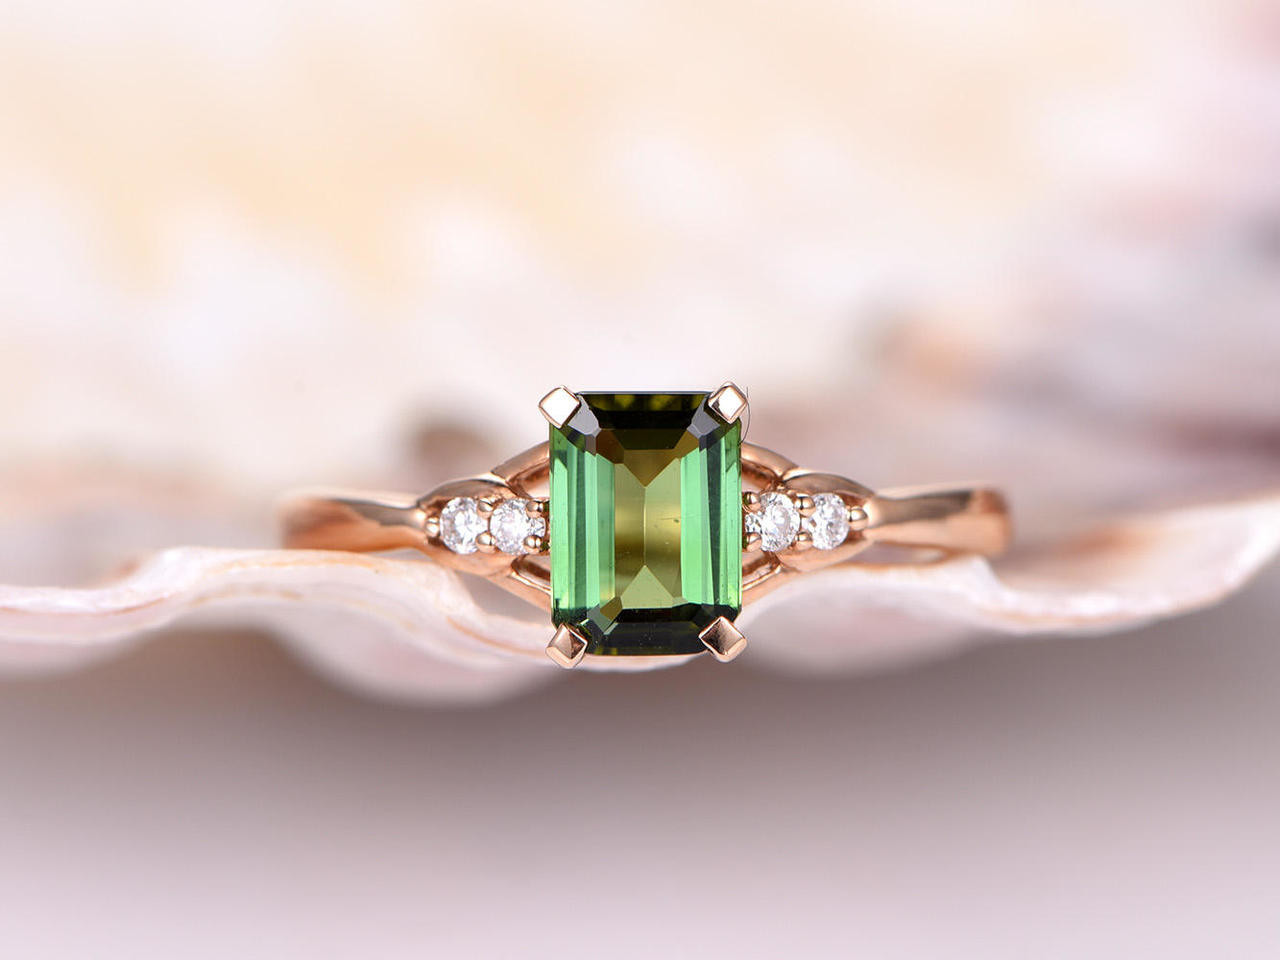 ring gemstone image green tourmaline engagement jewellery rings diamond white gold